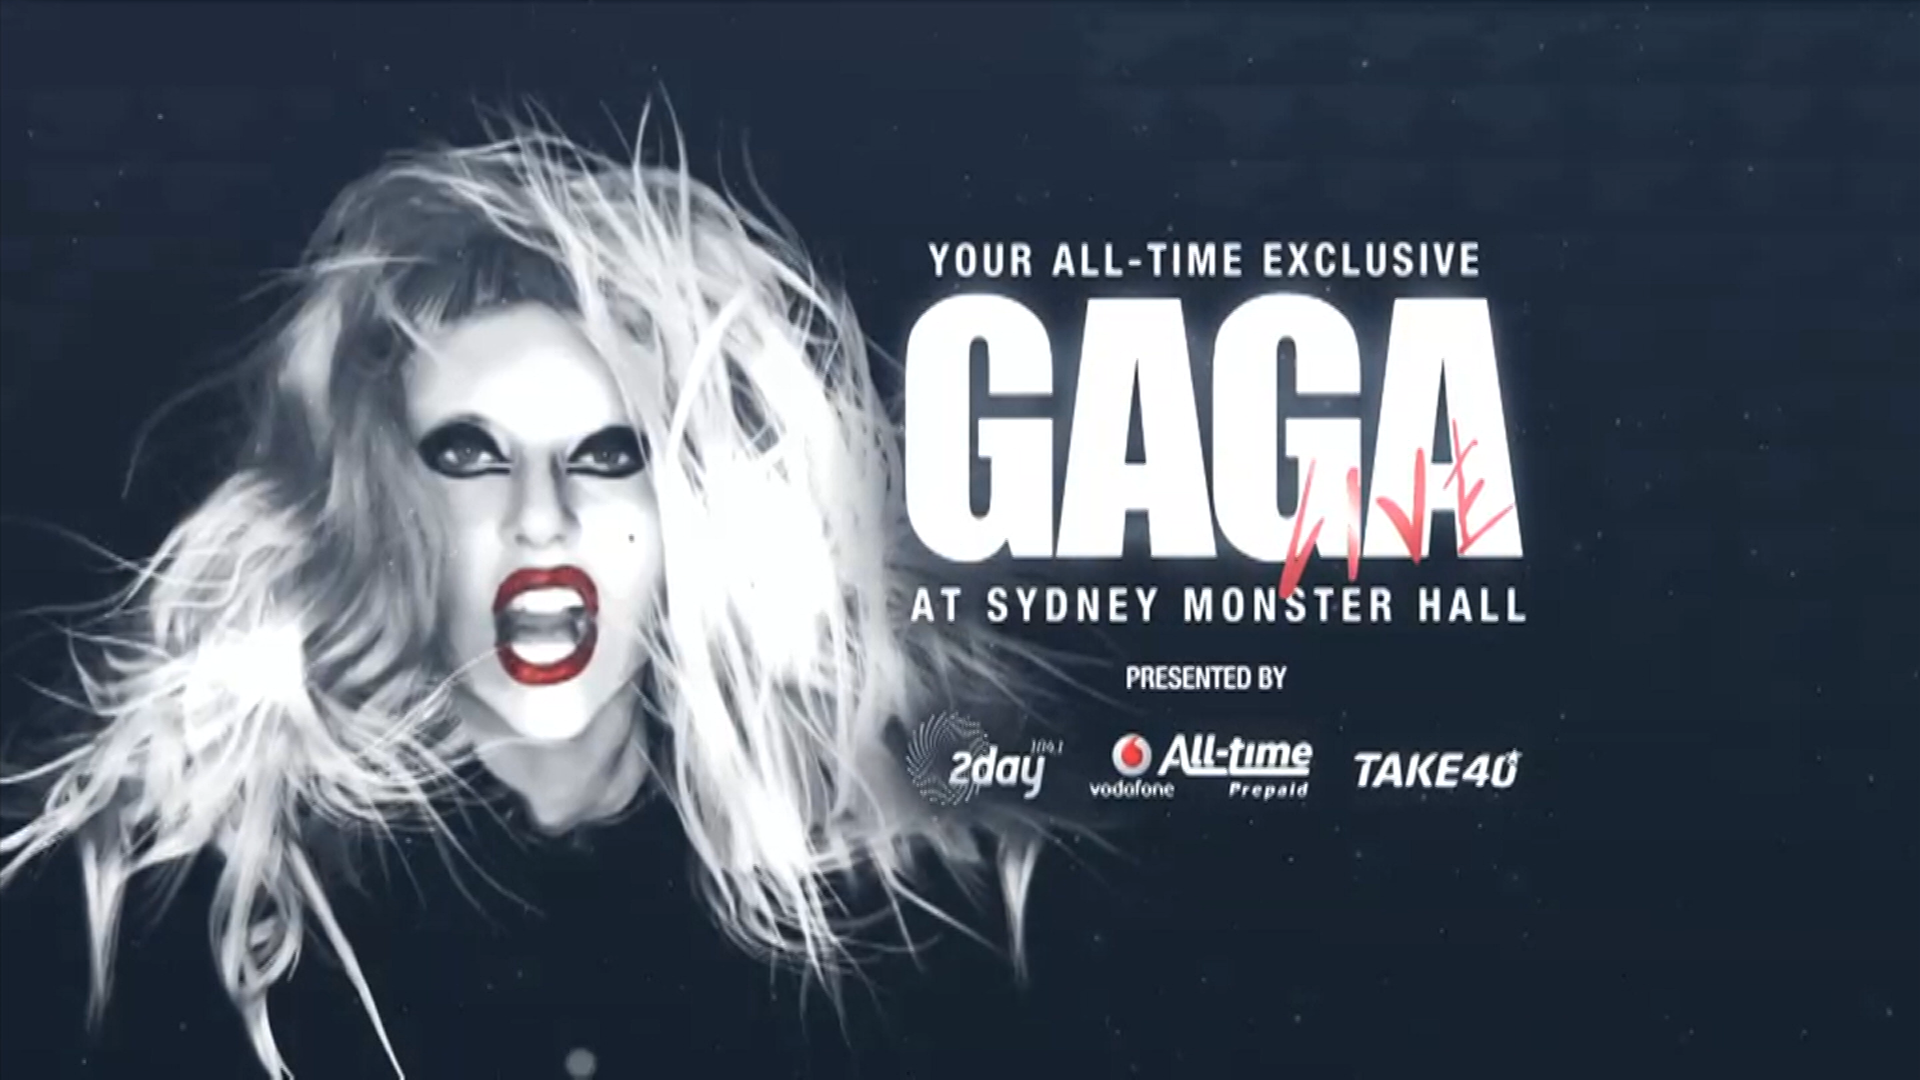 LADY GAGA ALL TIME EXCLUSIVE